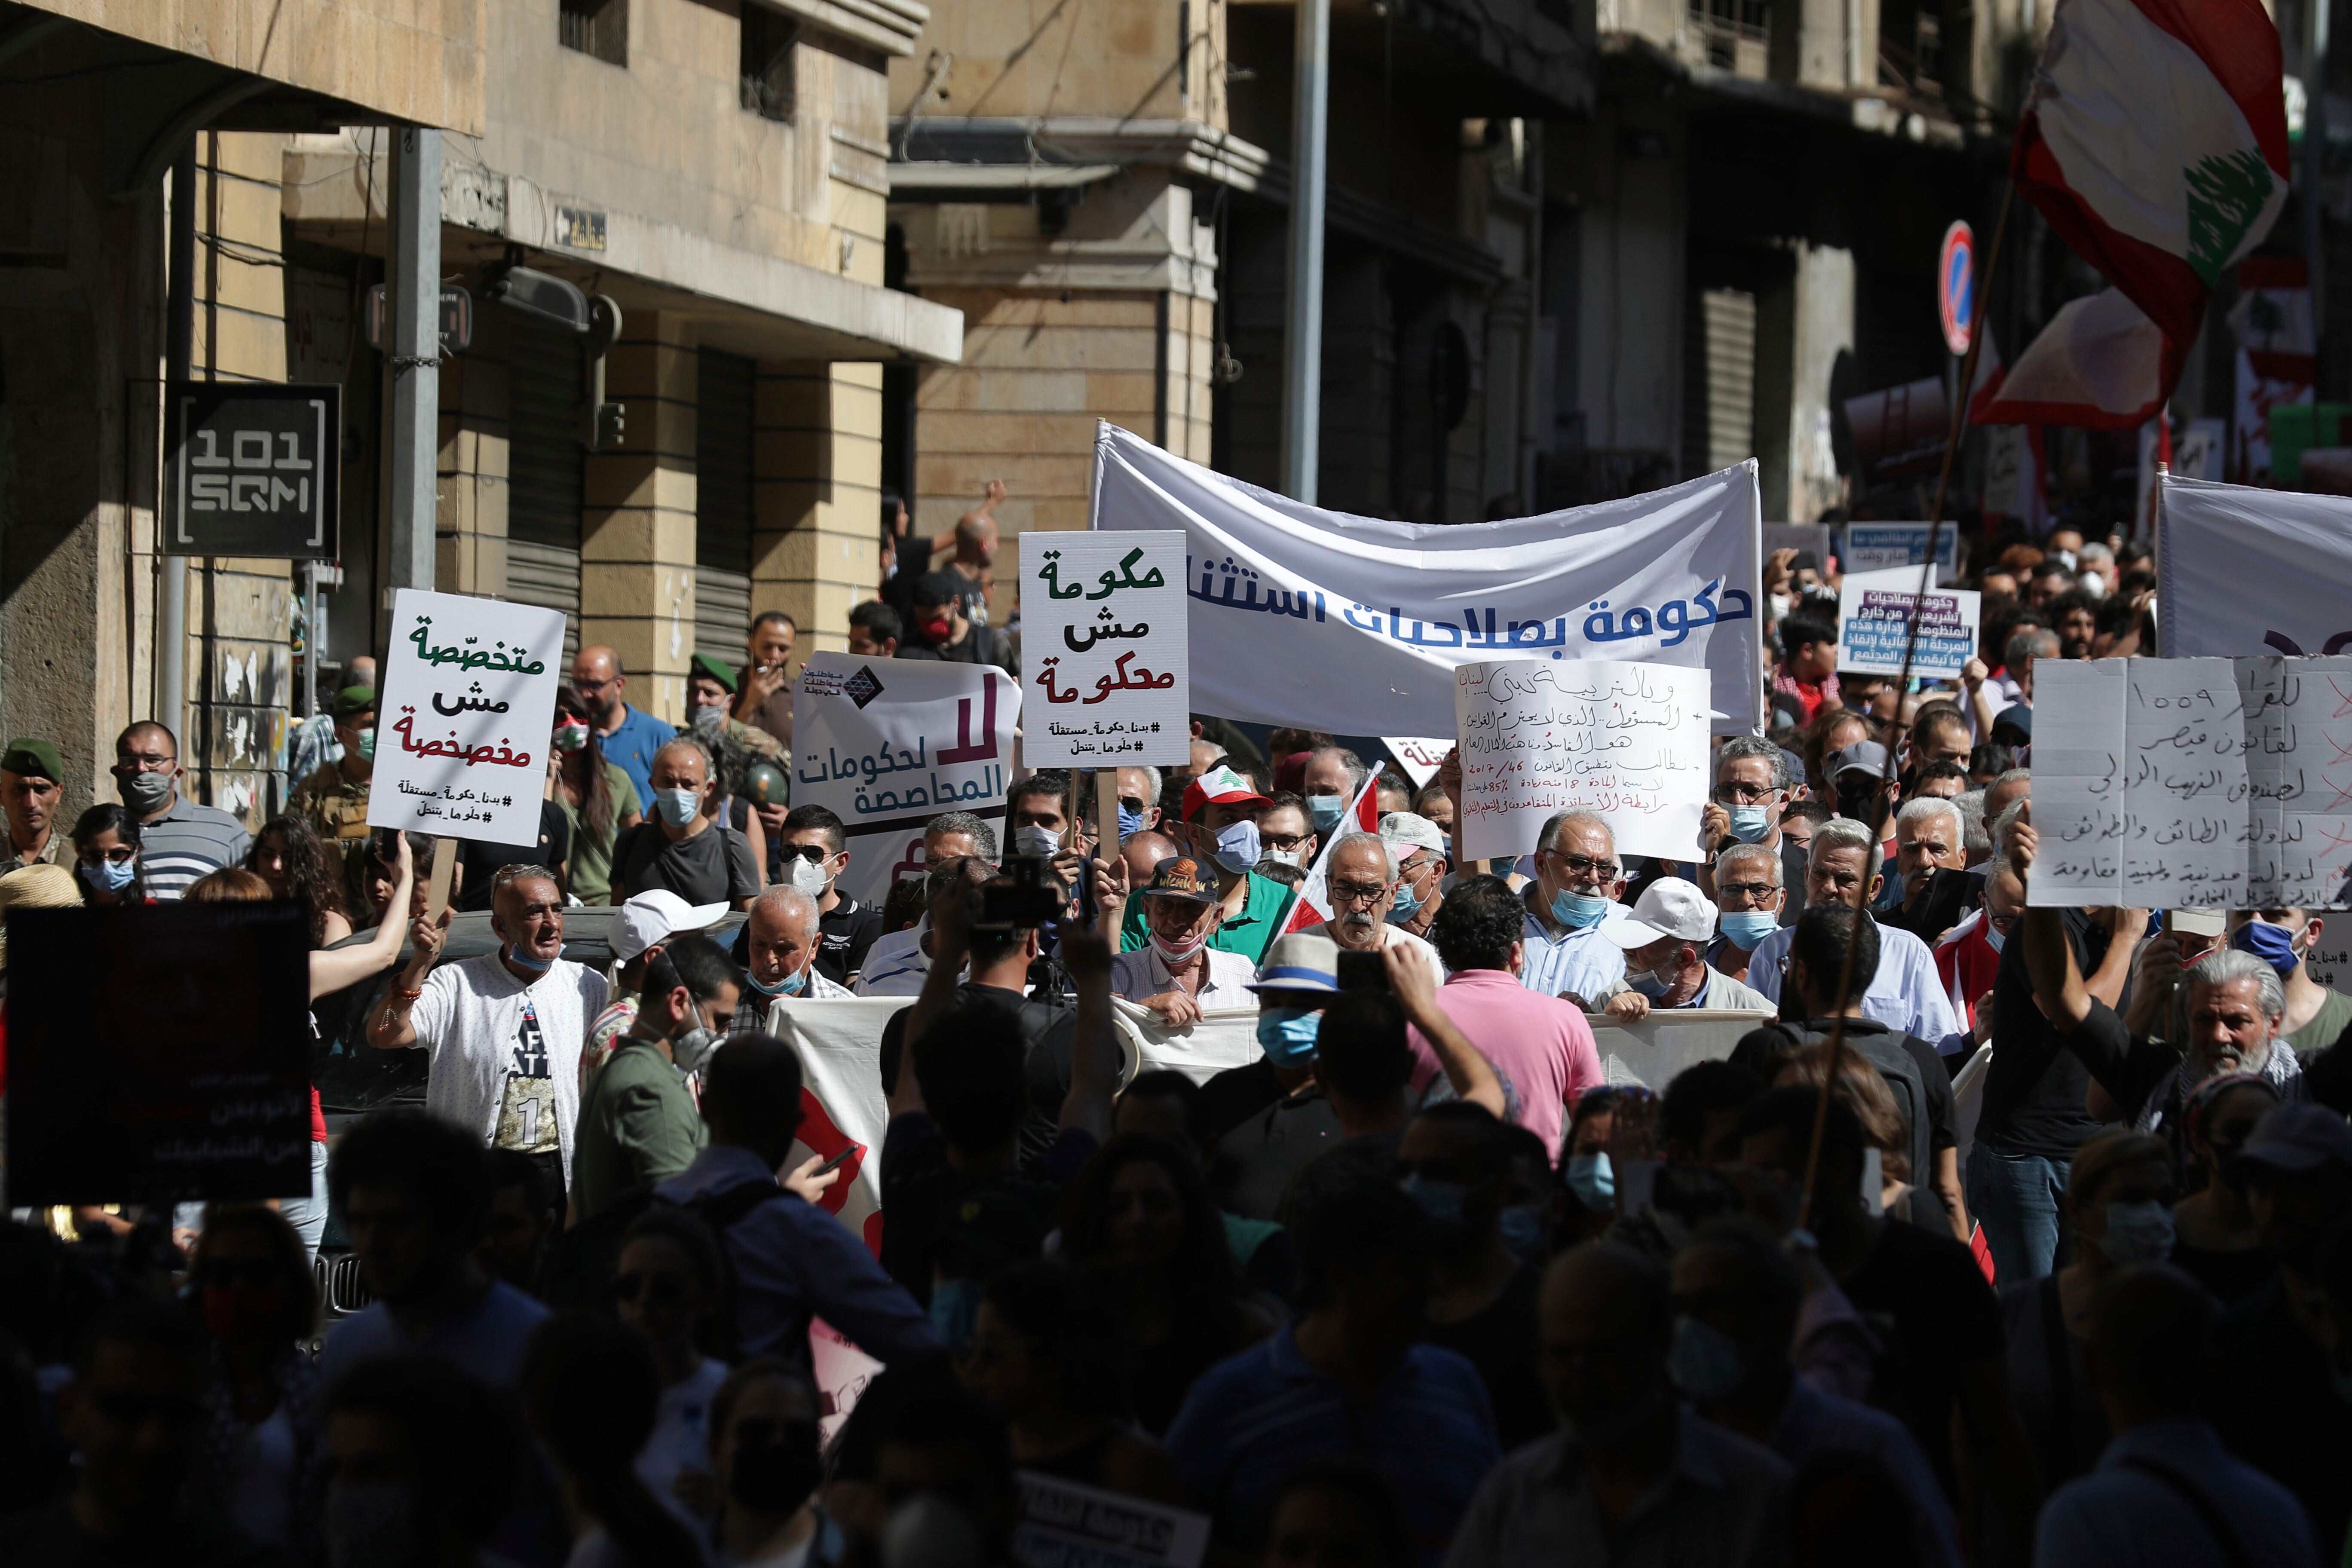 Anti-government protesters shout slogans against the government in Beirut, Lebanon, Saturday, June 13, 2020. (AP Photo/Hassan